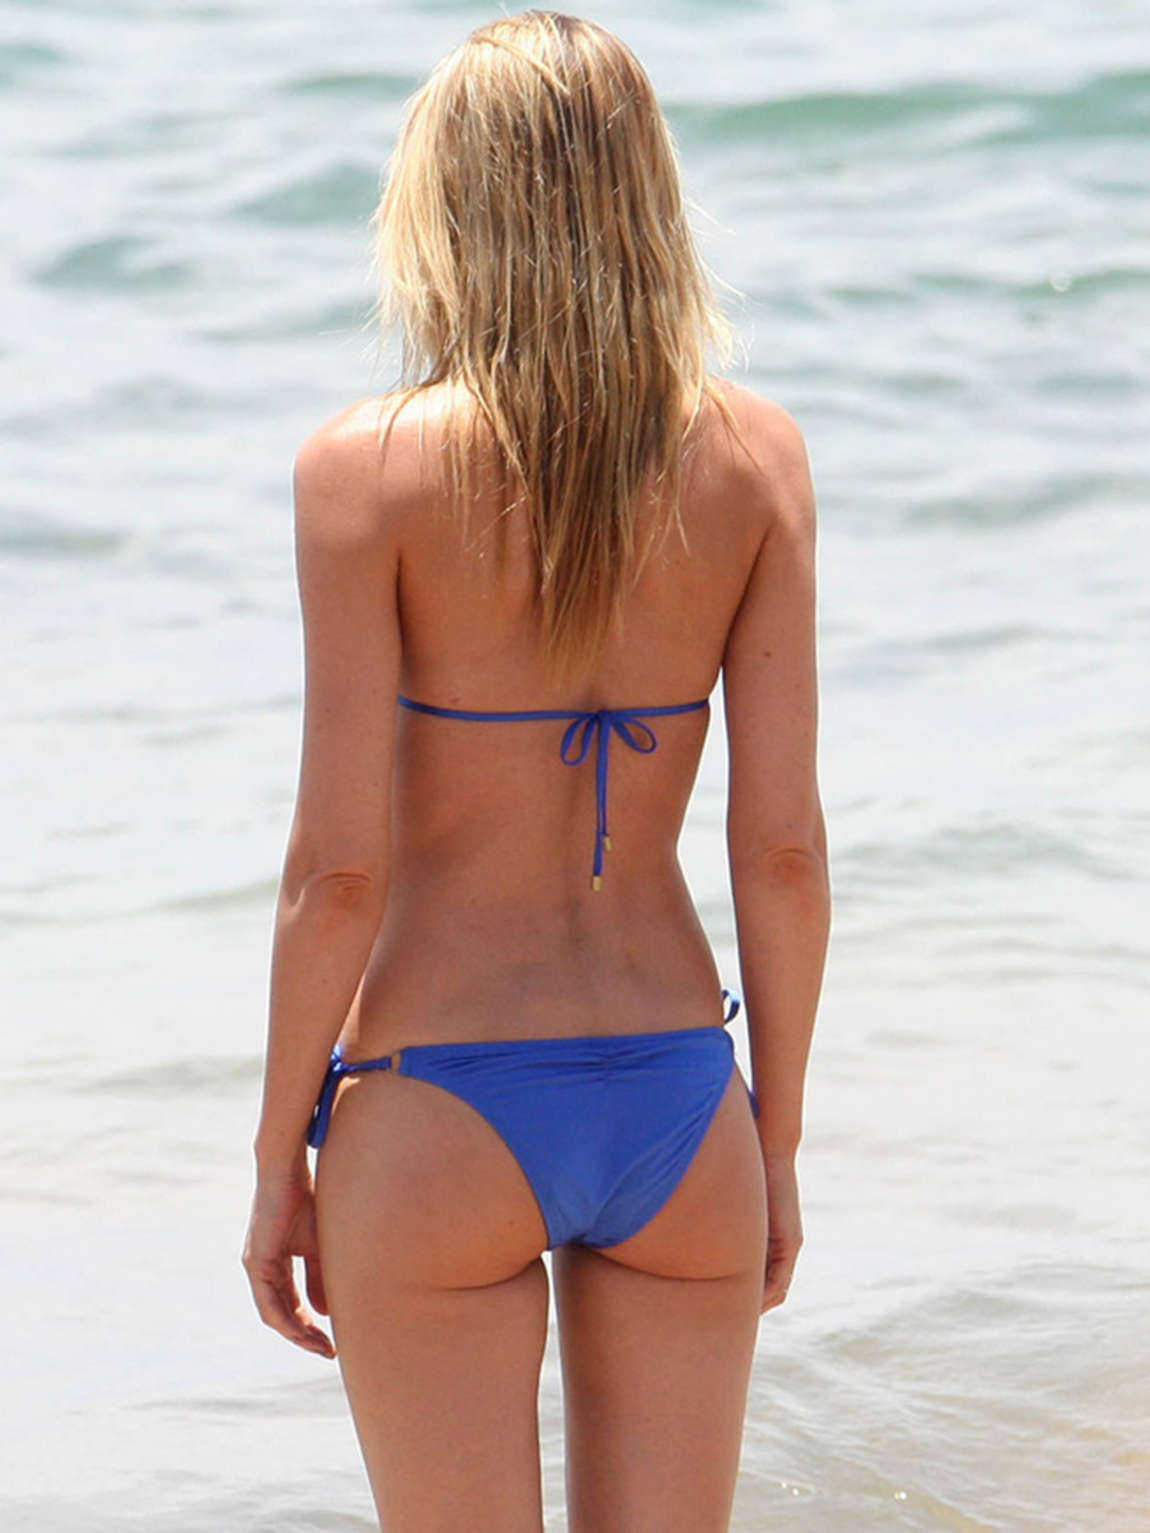 ... to delete this paige butcher in a blue bikini 04 gotceleb image from